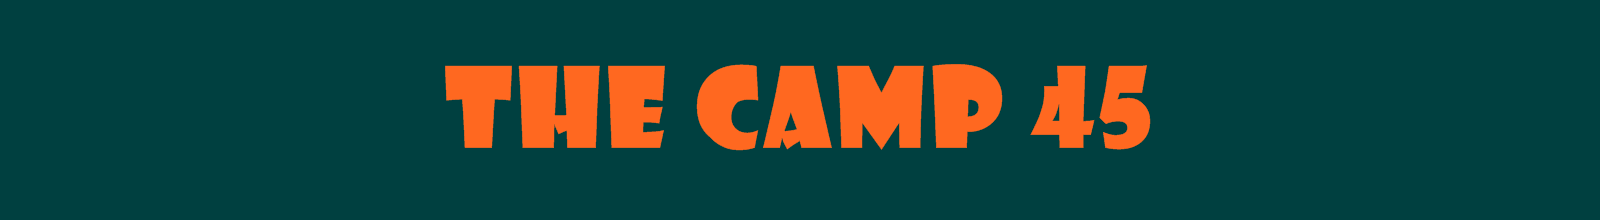 TheCamp45